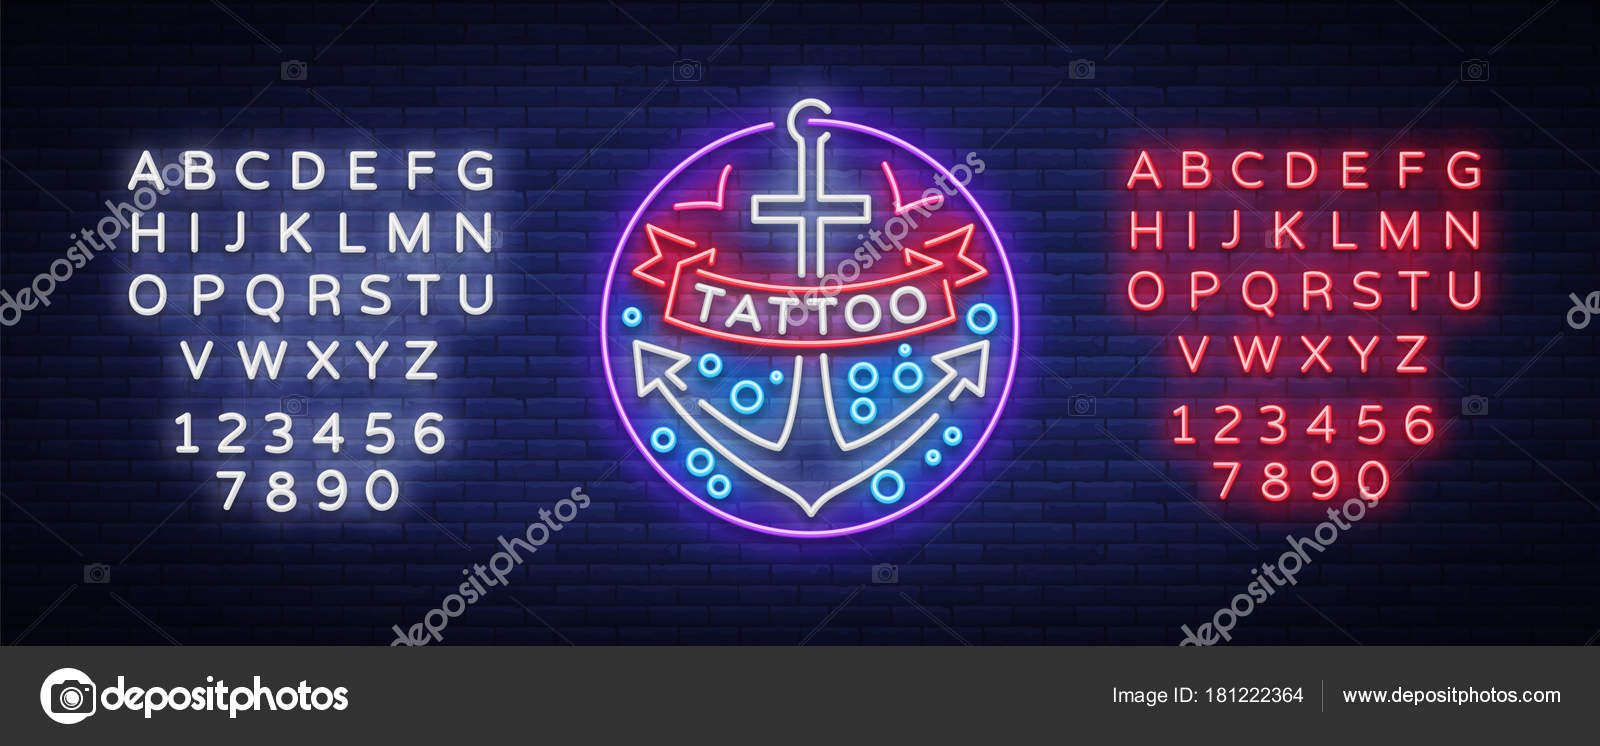 Tattoo salon logo in a neon style  Neon sign, emblem, anchor